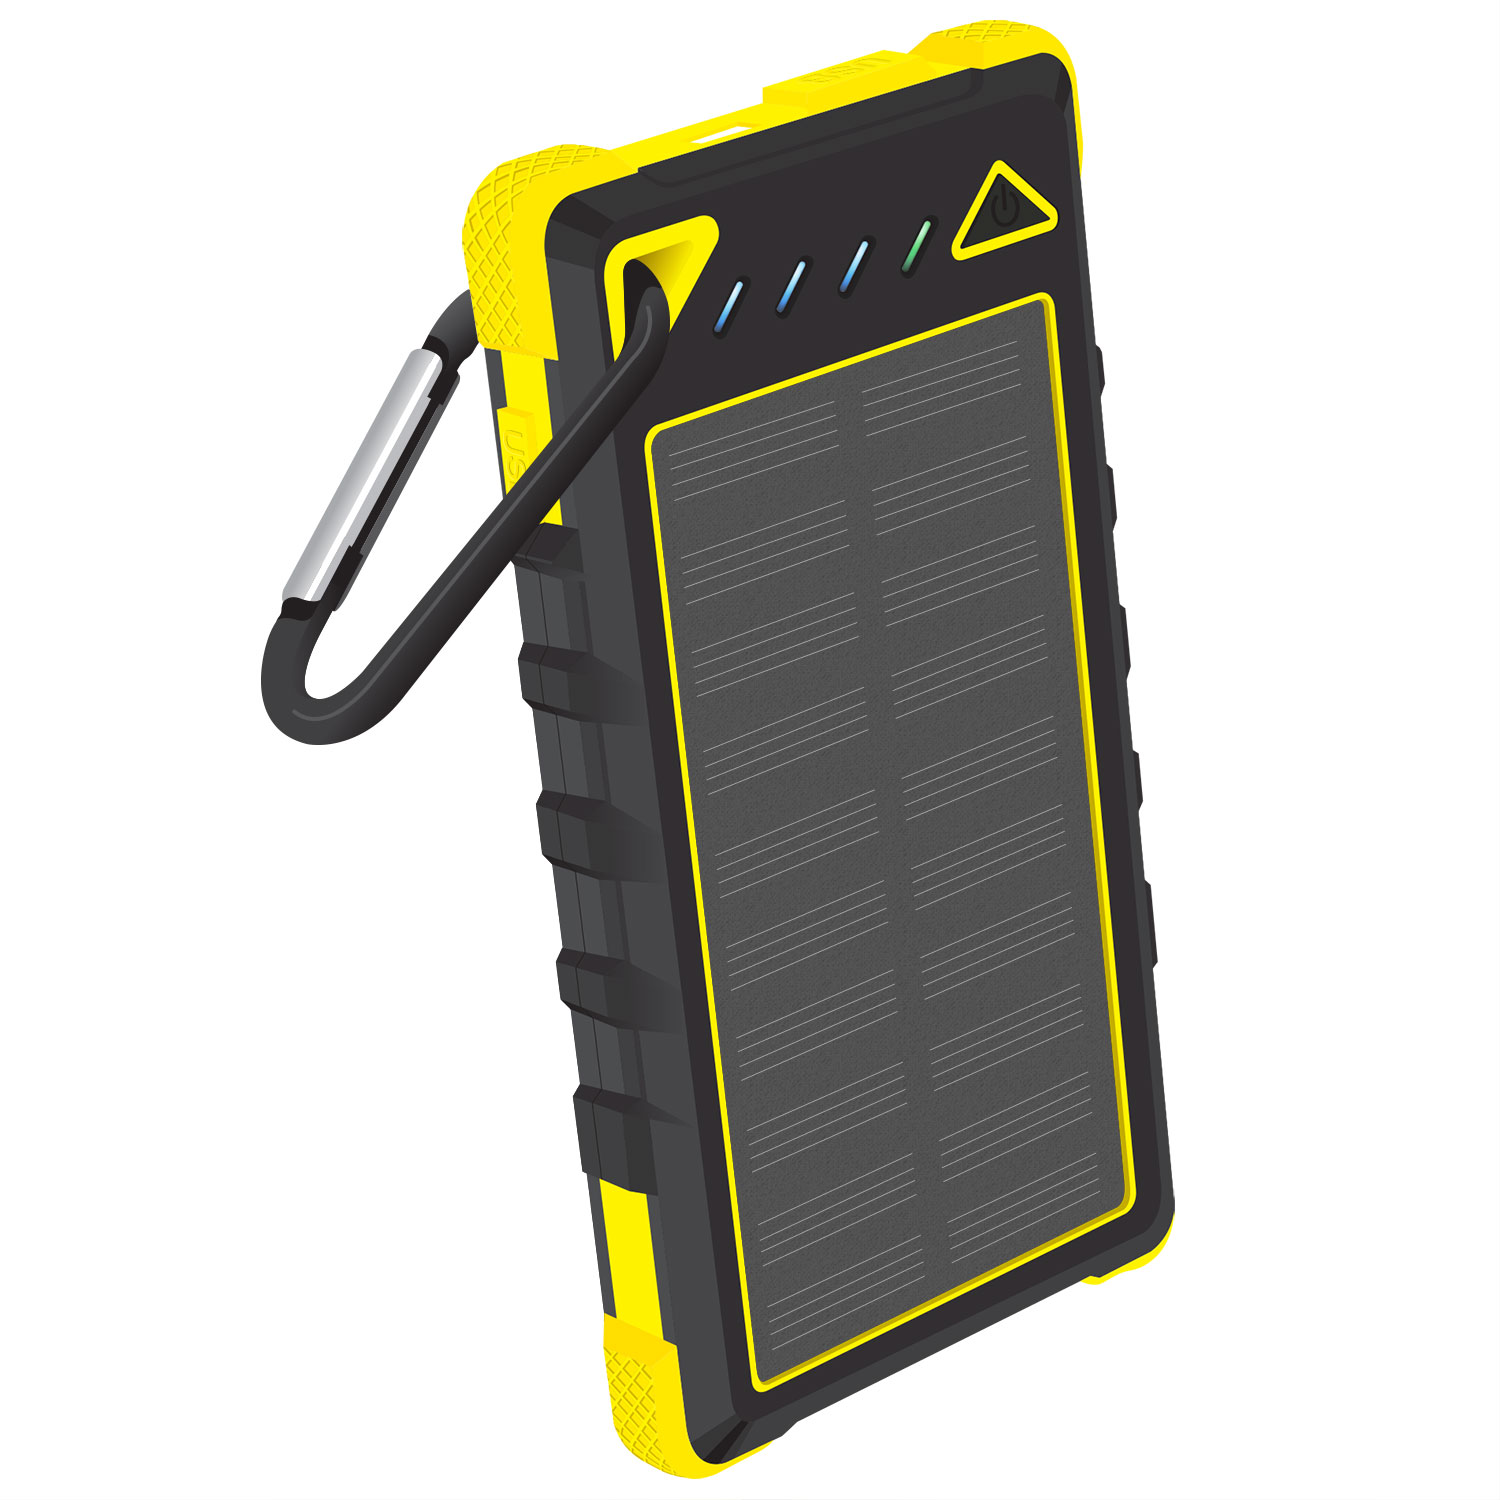 LG K40 Solar Powered Portable PowerBank Yellow